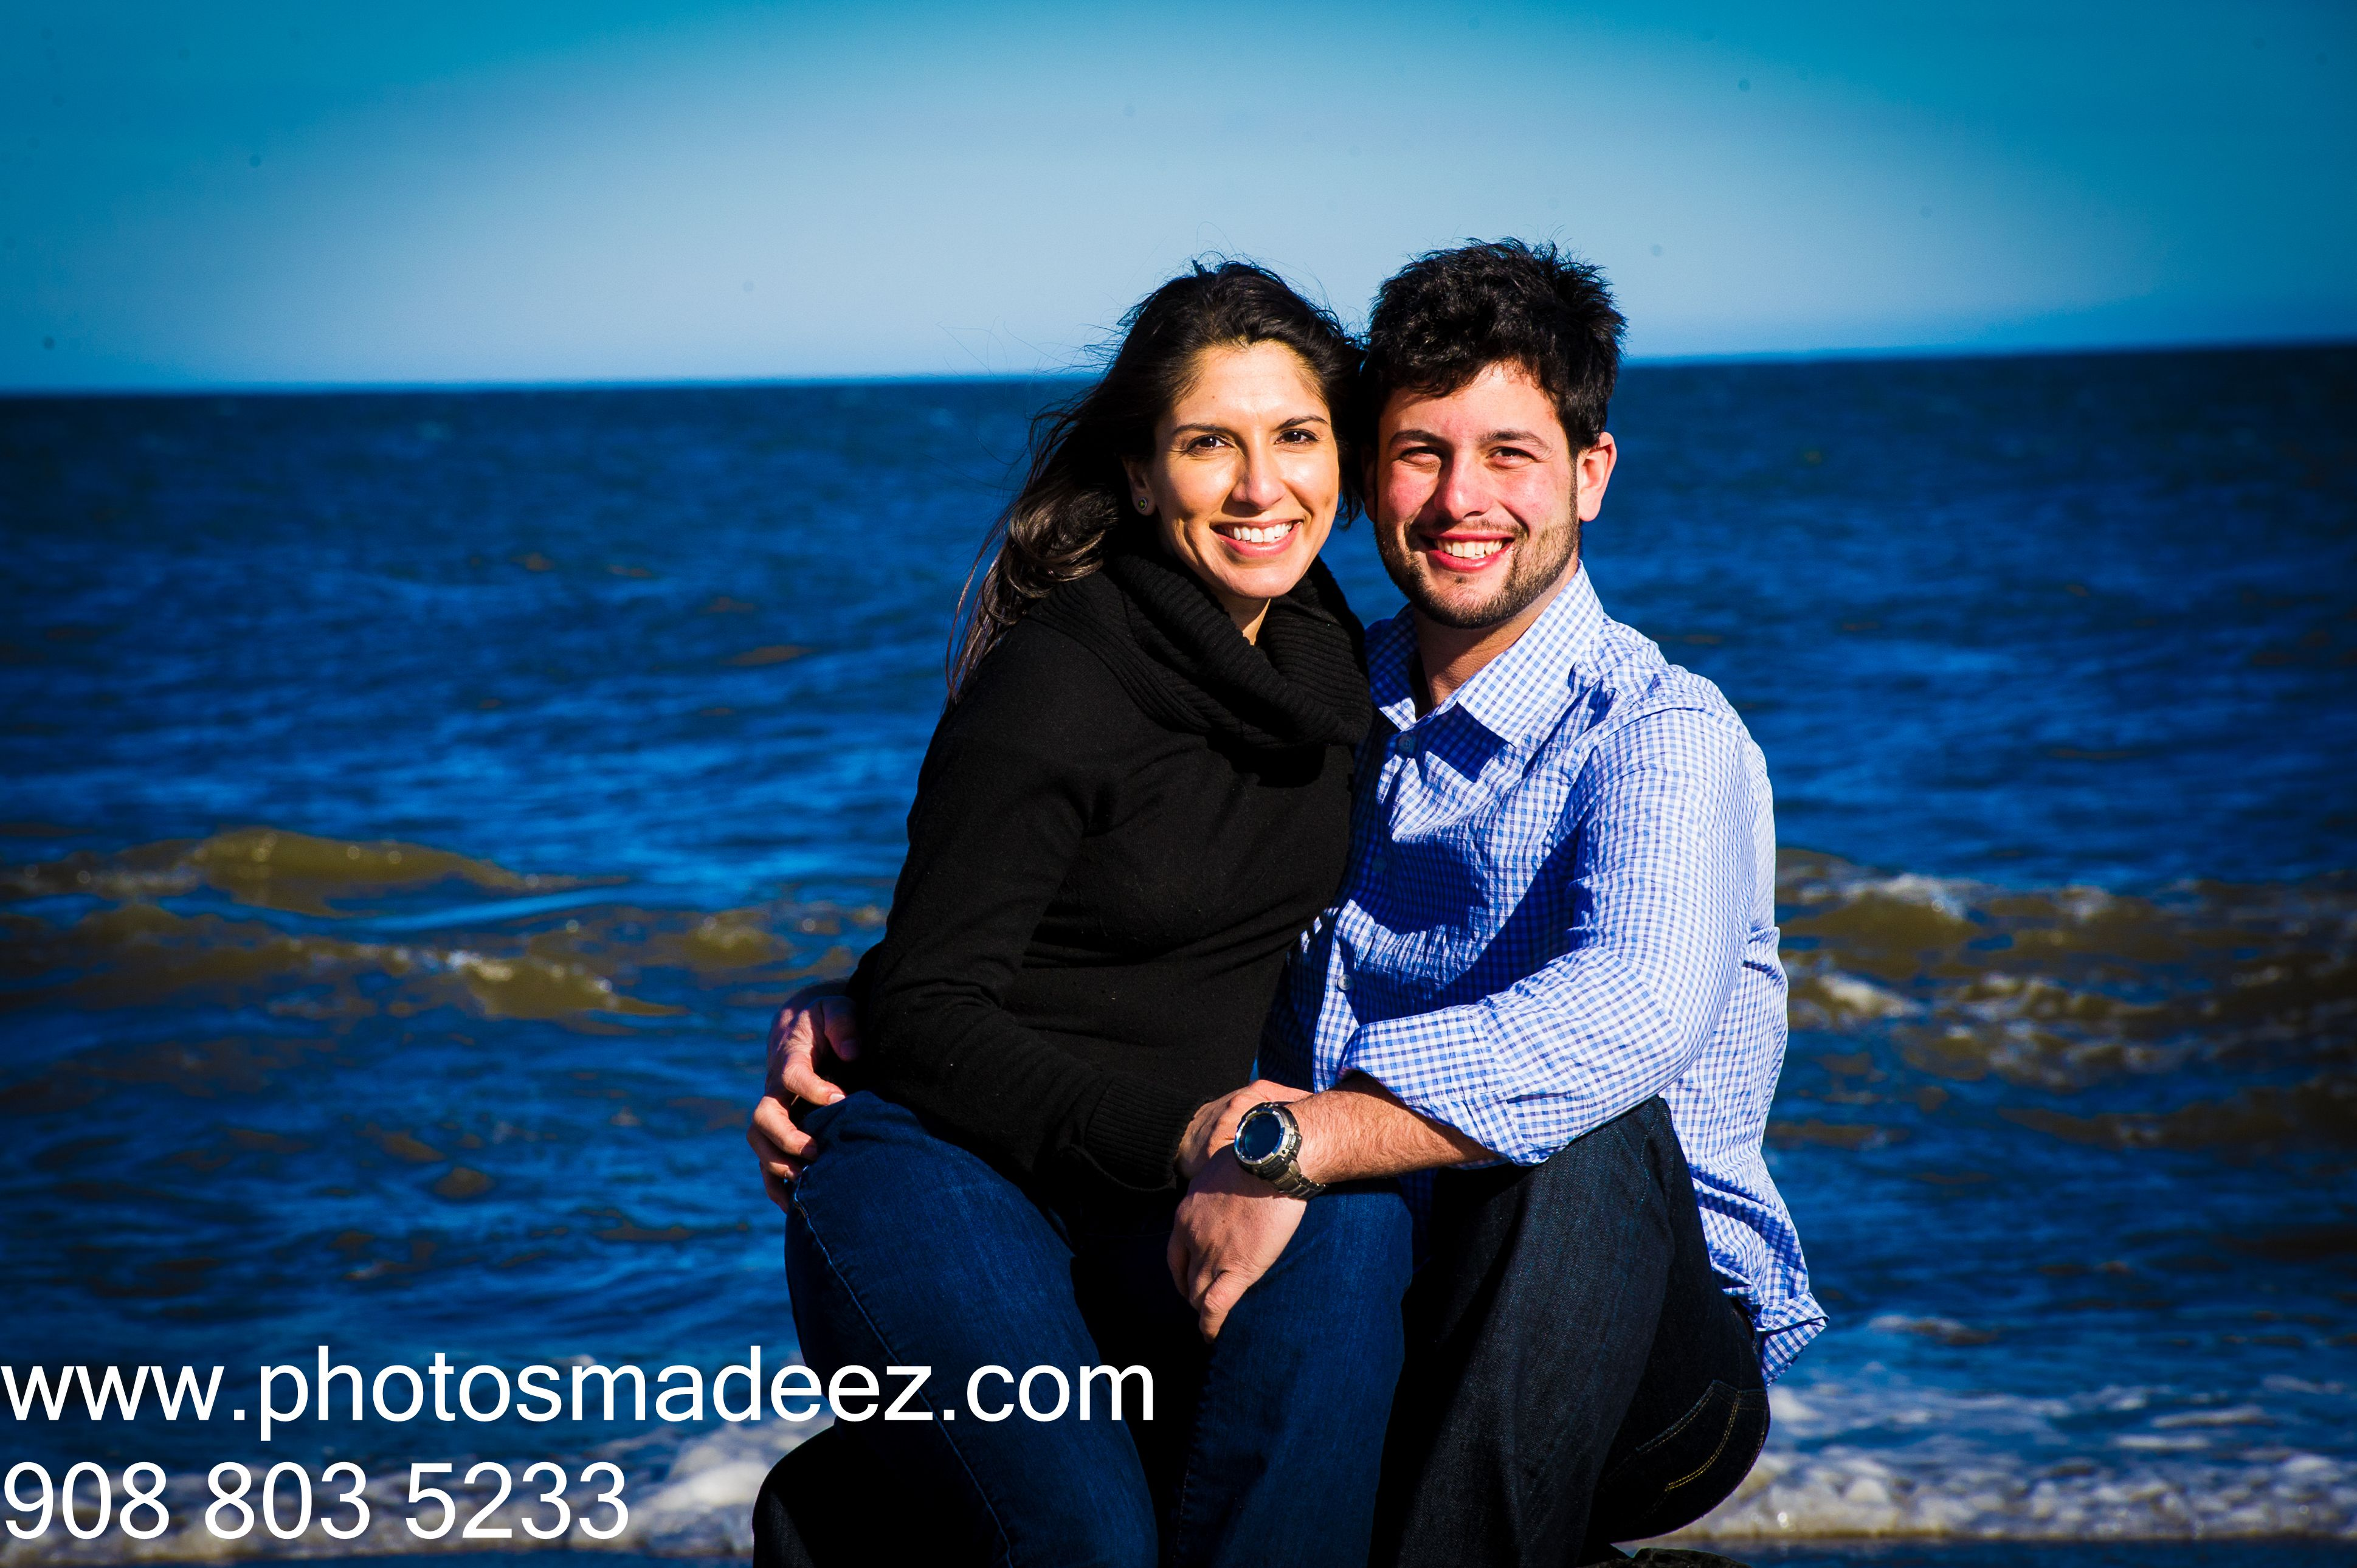 beach wedding in new jersey%0A Engagement Photo for mixed wedding in new jersey  indian bride  american  groom  Engagement